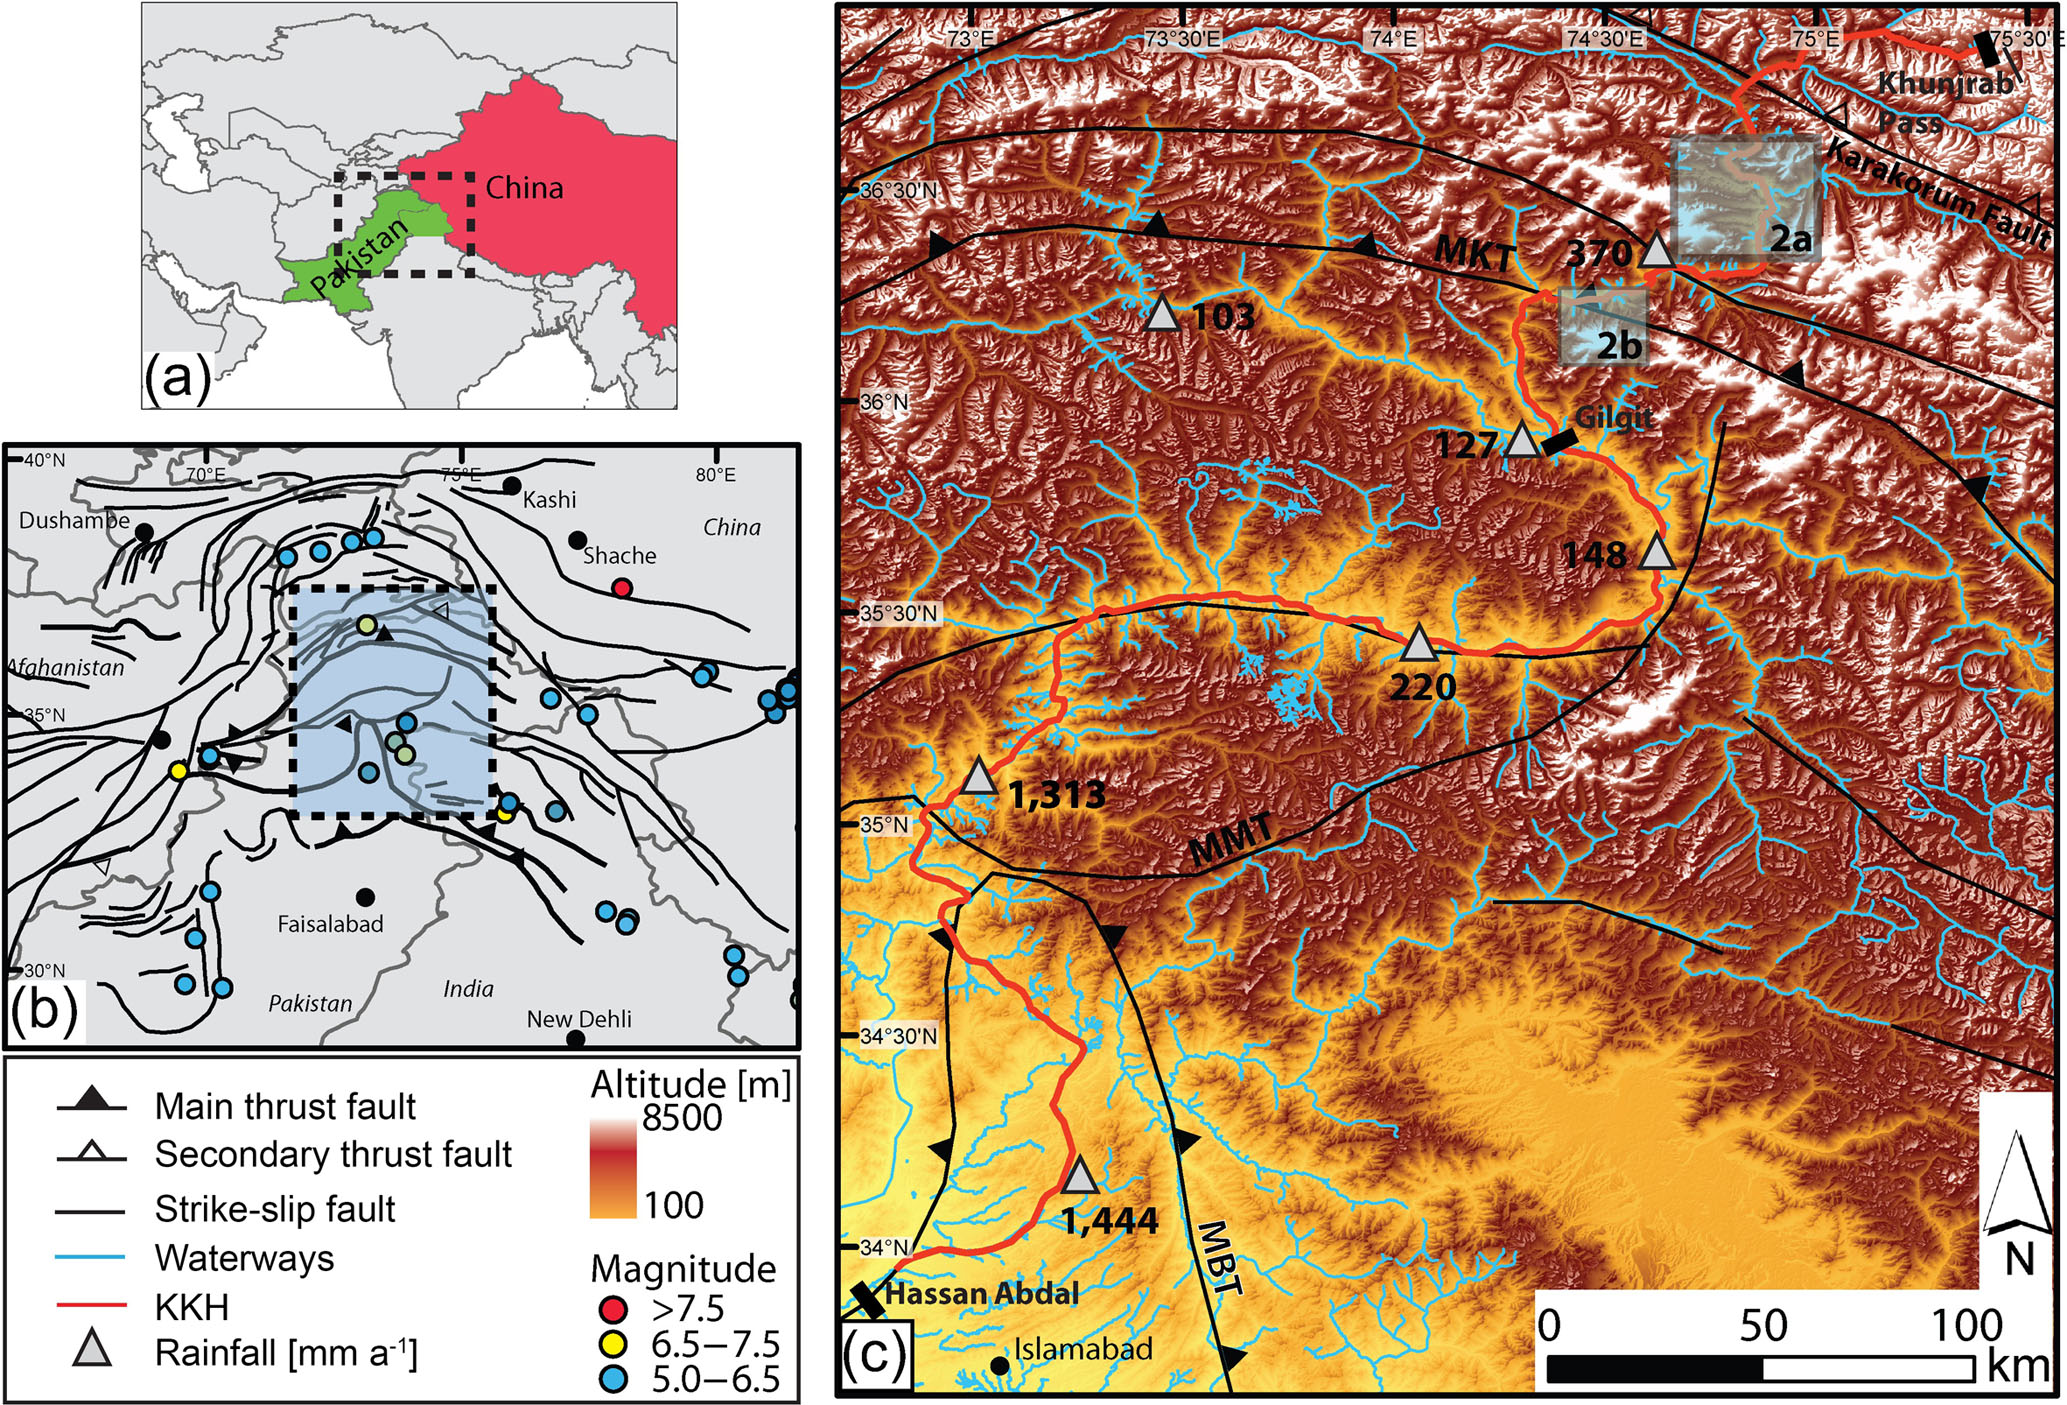 NHESS - Landslide susceptibility mapping by using a